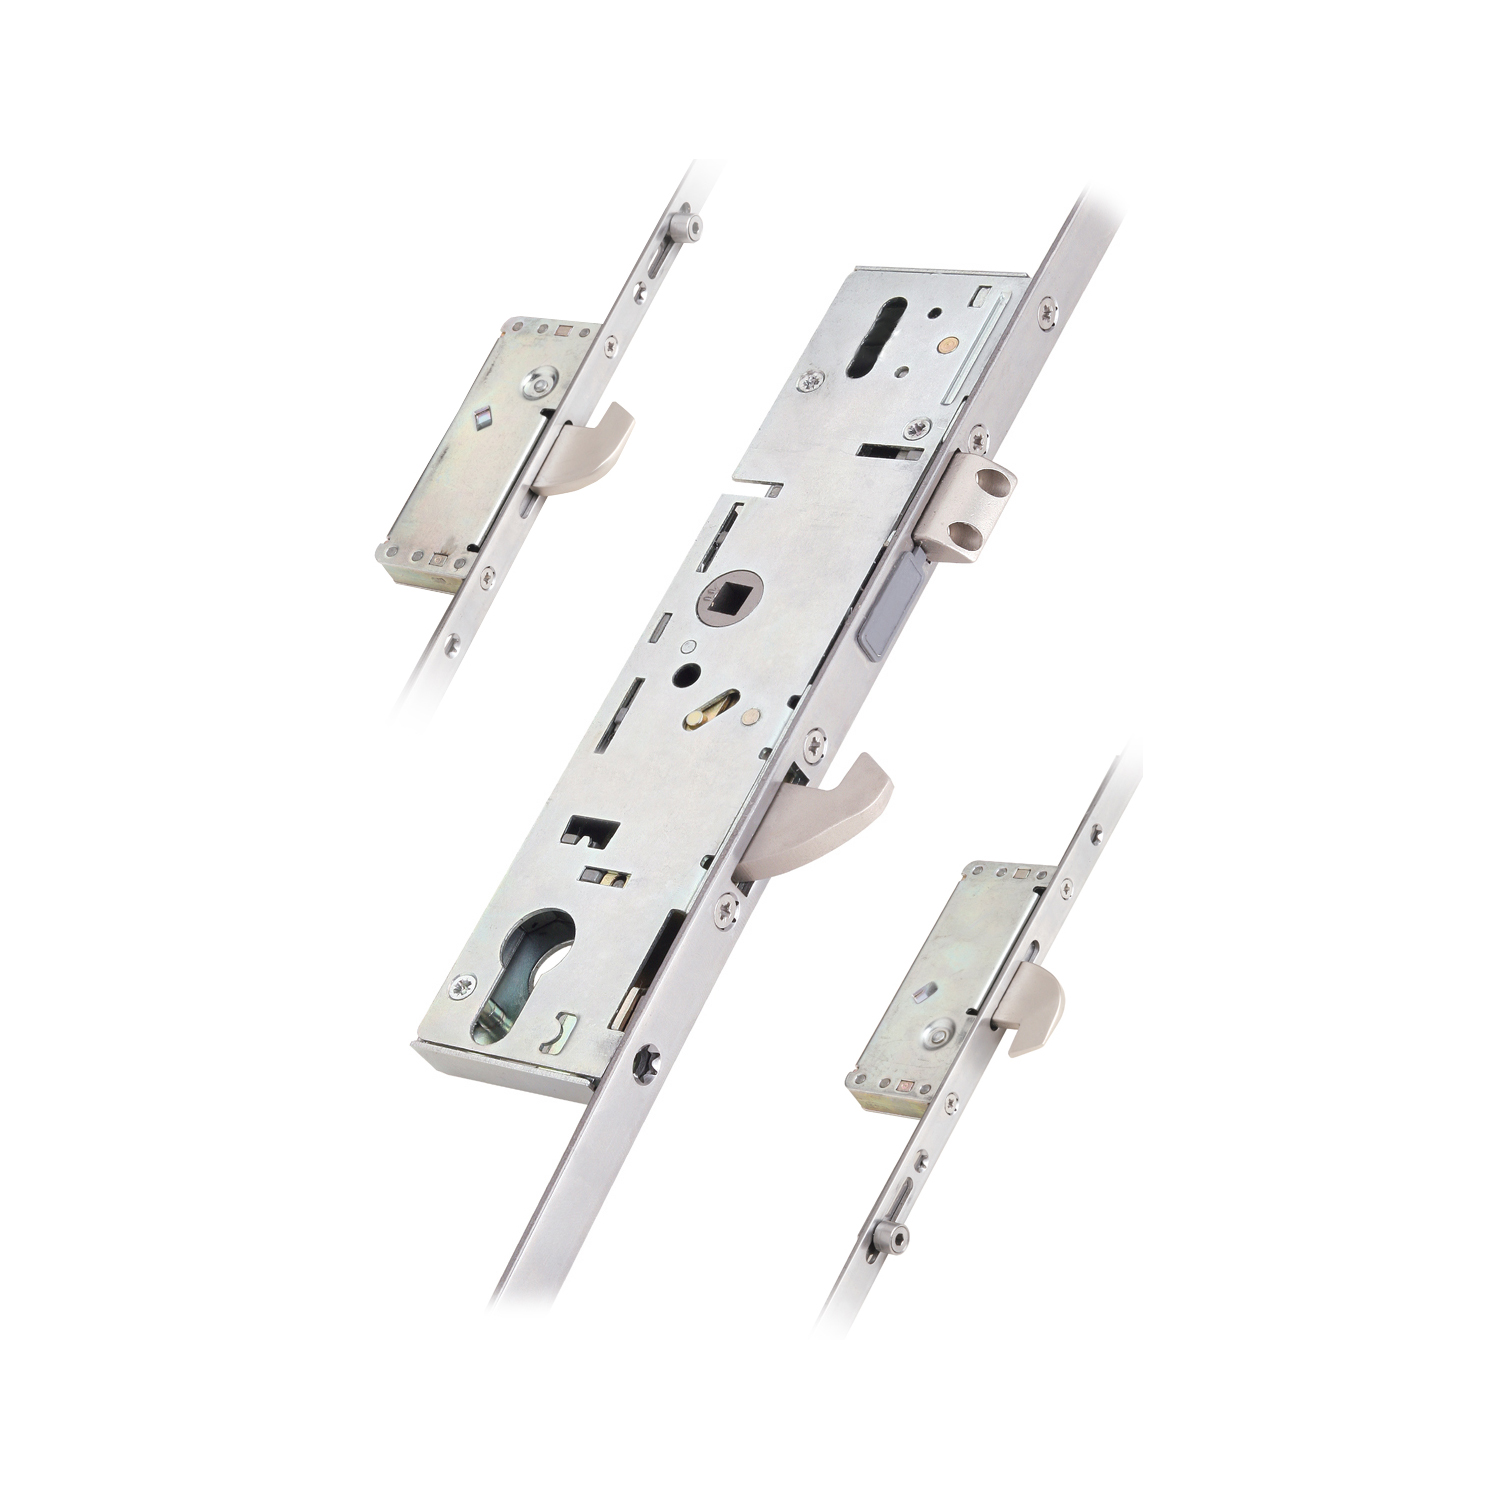 3 Hook 2 Roller Euro Cylinder Multi Point Door Lock - 6000 Series